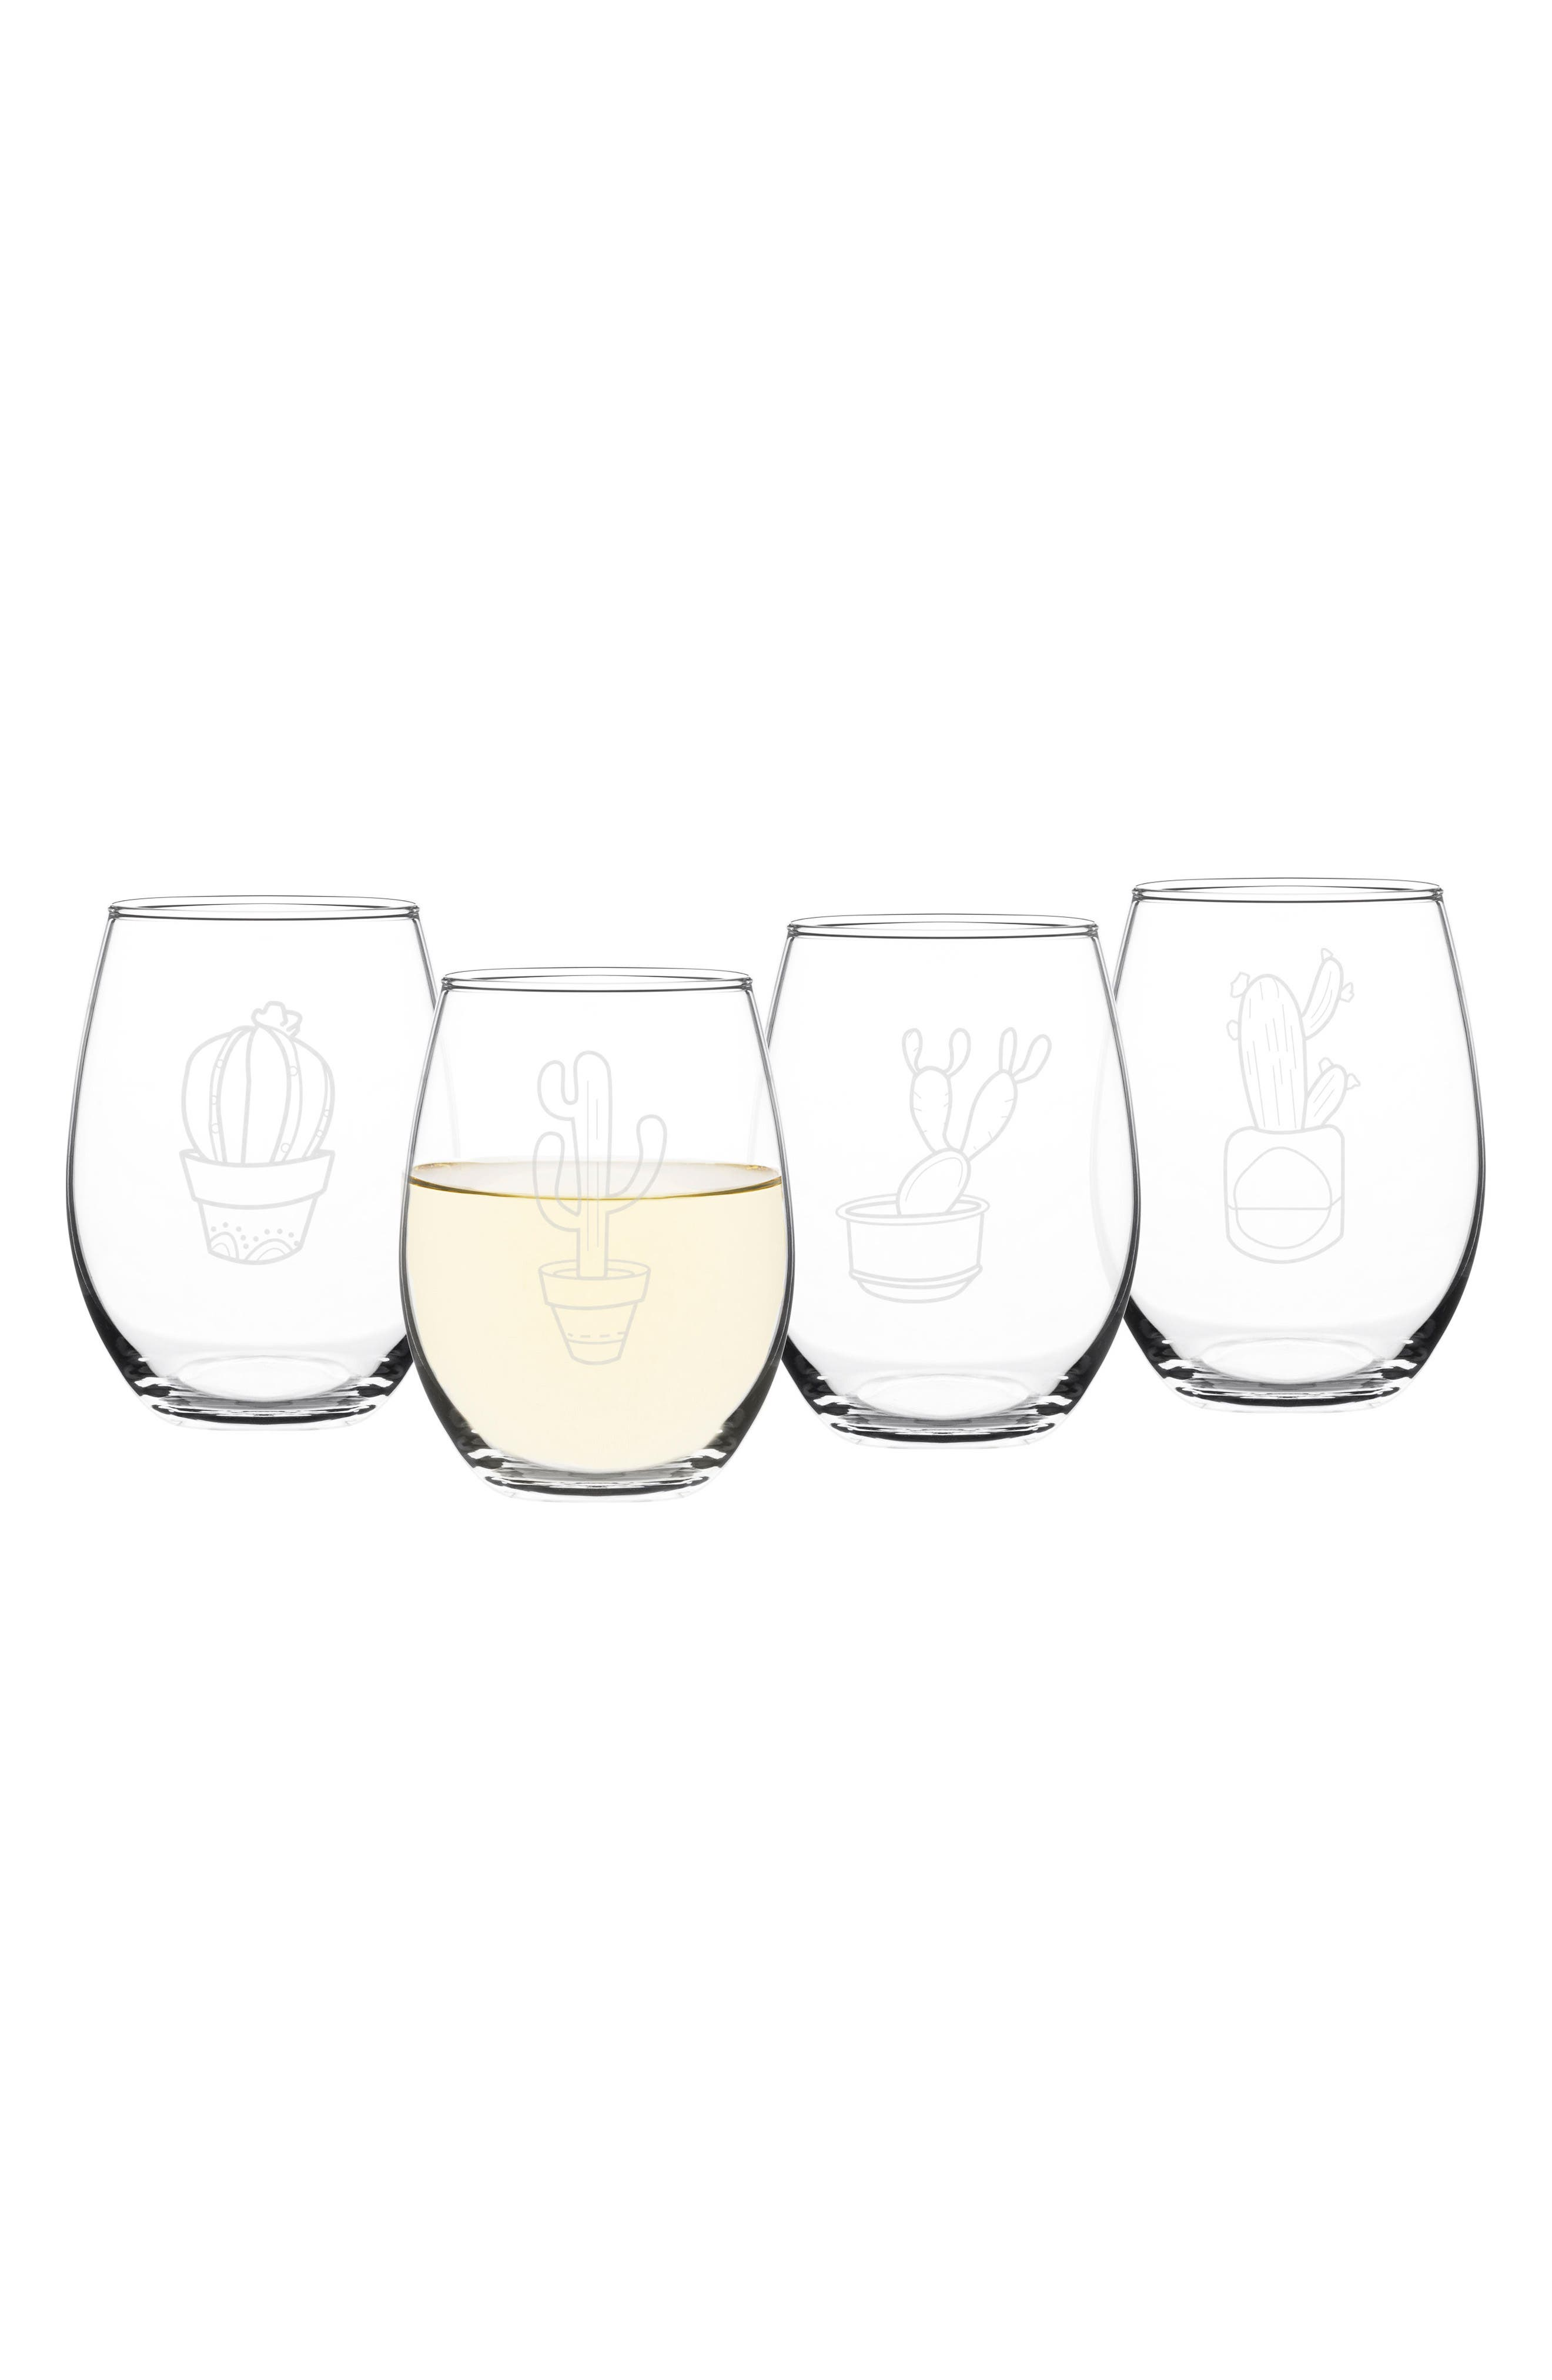 Cactus Set of 4 Stemless Wine Glasses,                             Alternate thumbnail 4, color,                             Clear